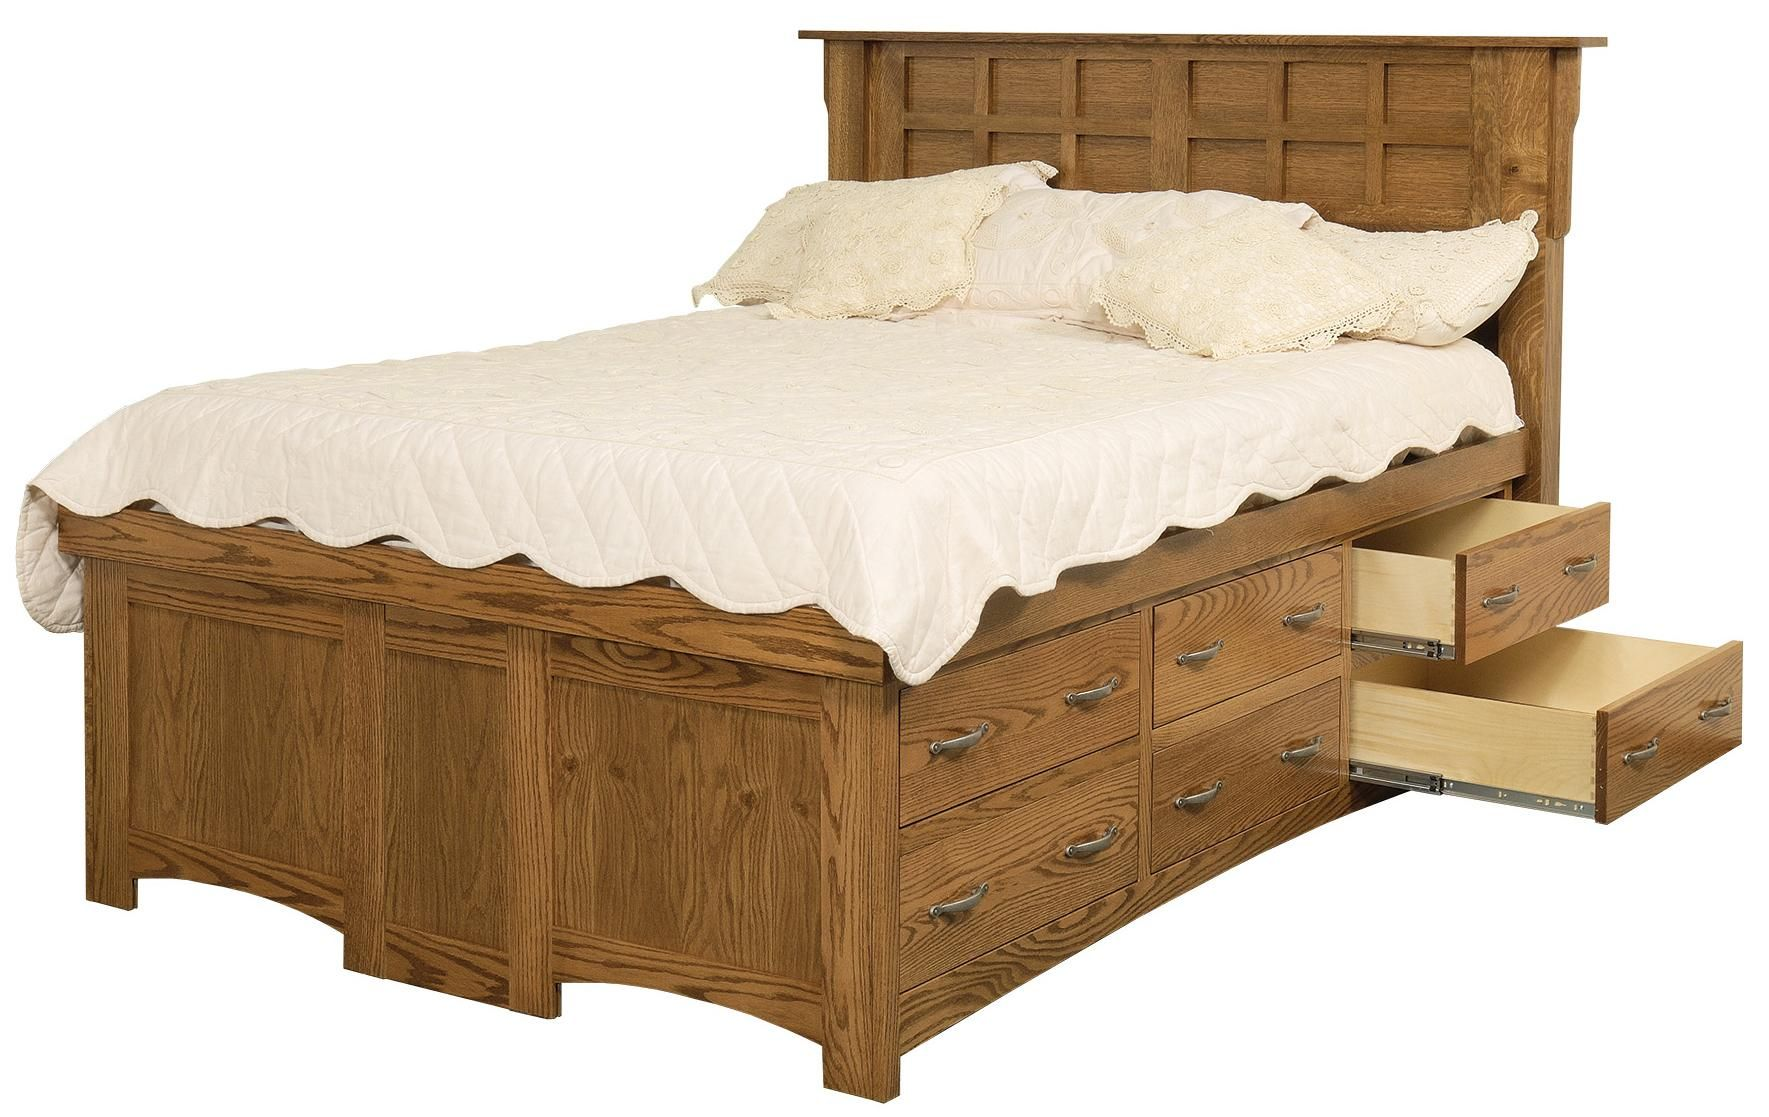 Amish Arts And Crafts Queen Solid Wood Pedestal Bed With